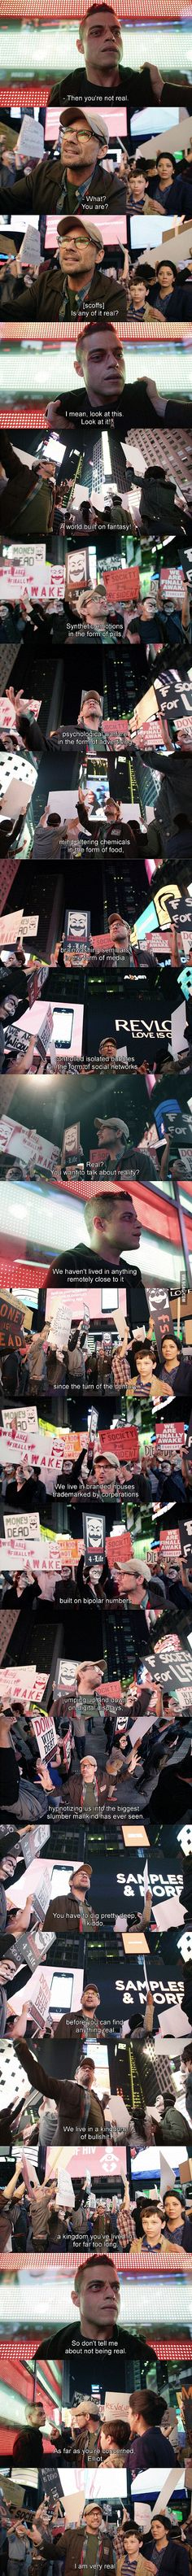 Epic speech is Epic. (Mr Robot) - 9GAG